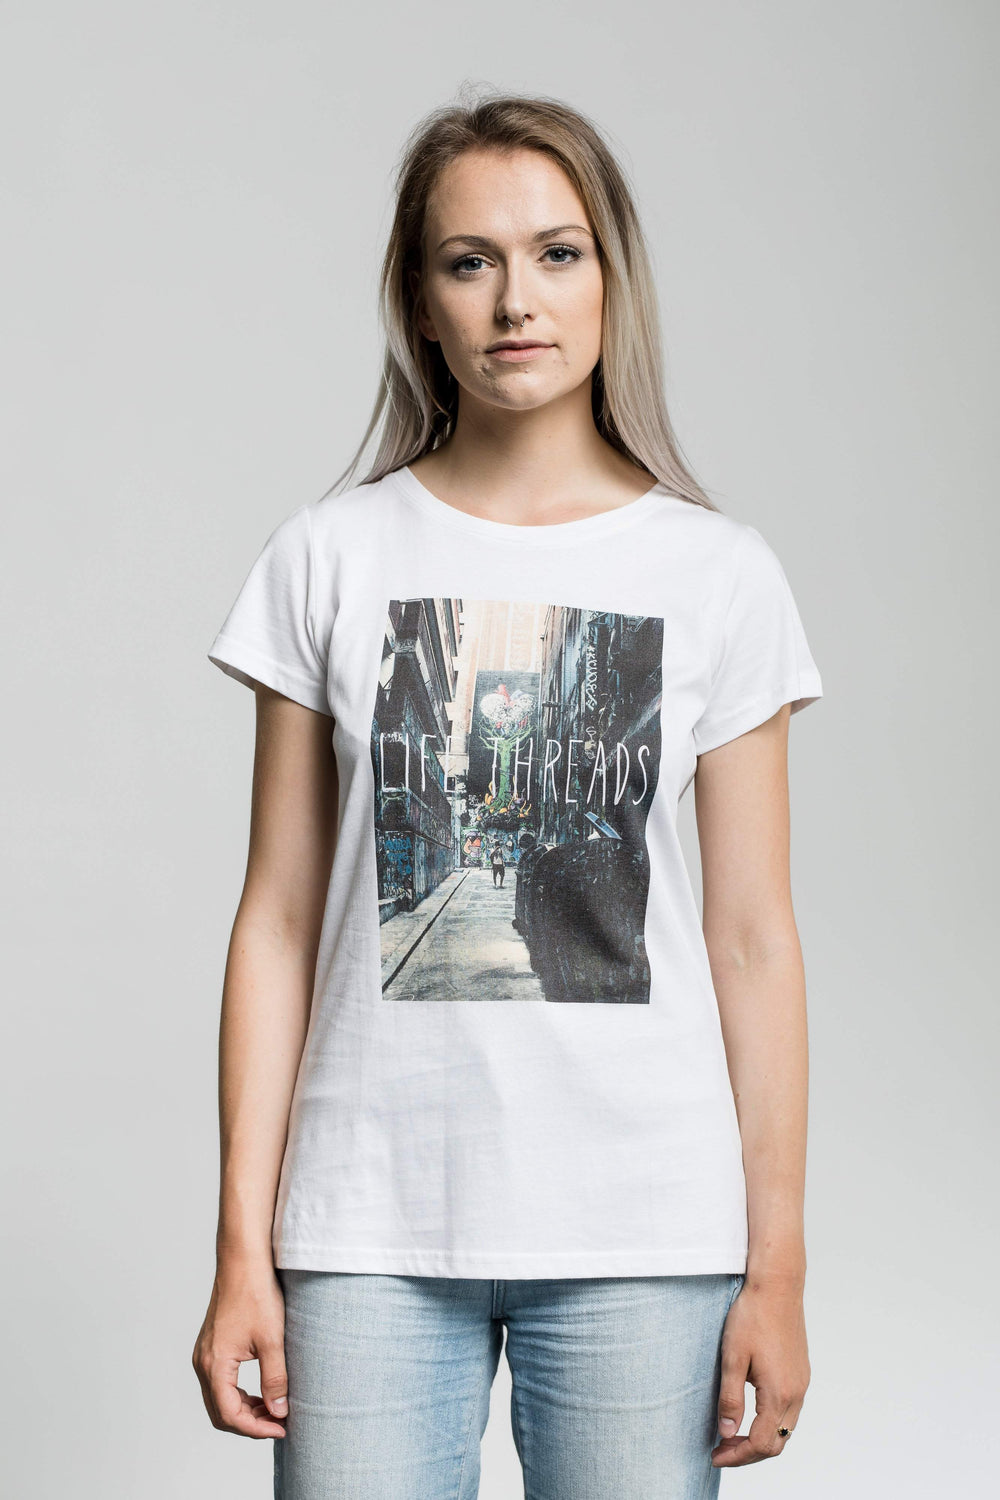 Alley - Fairtrade & Organic T-Shirt - Fair Trade Clothing by Life Threads